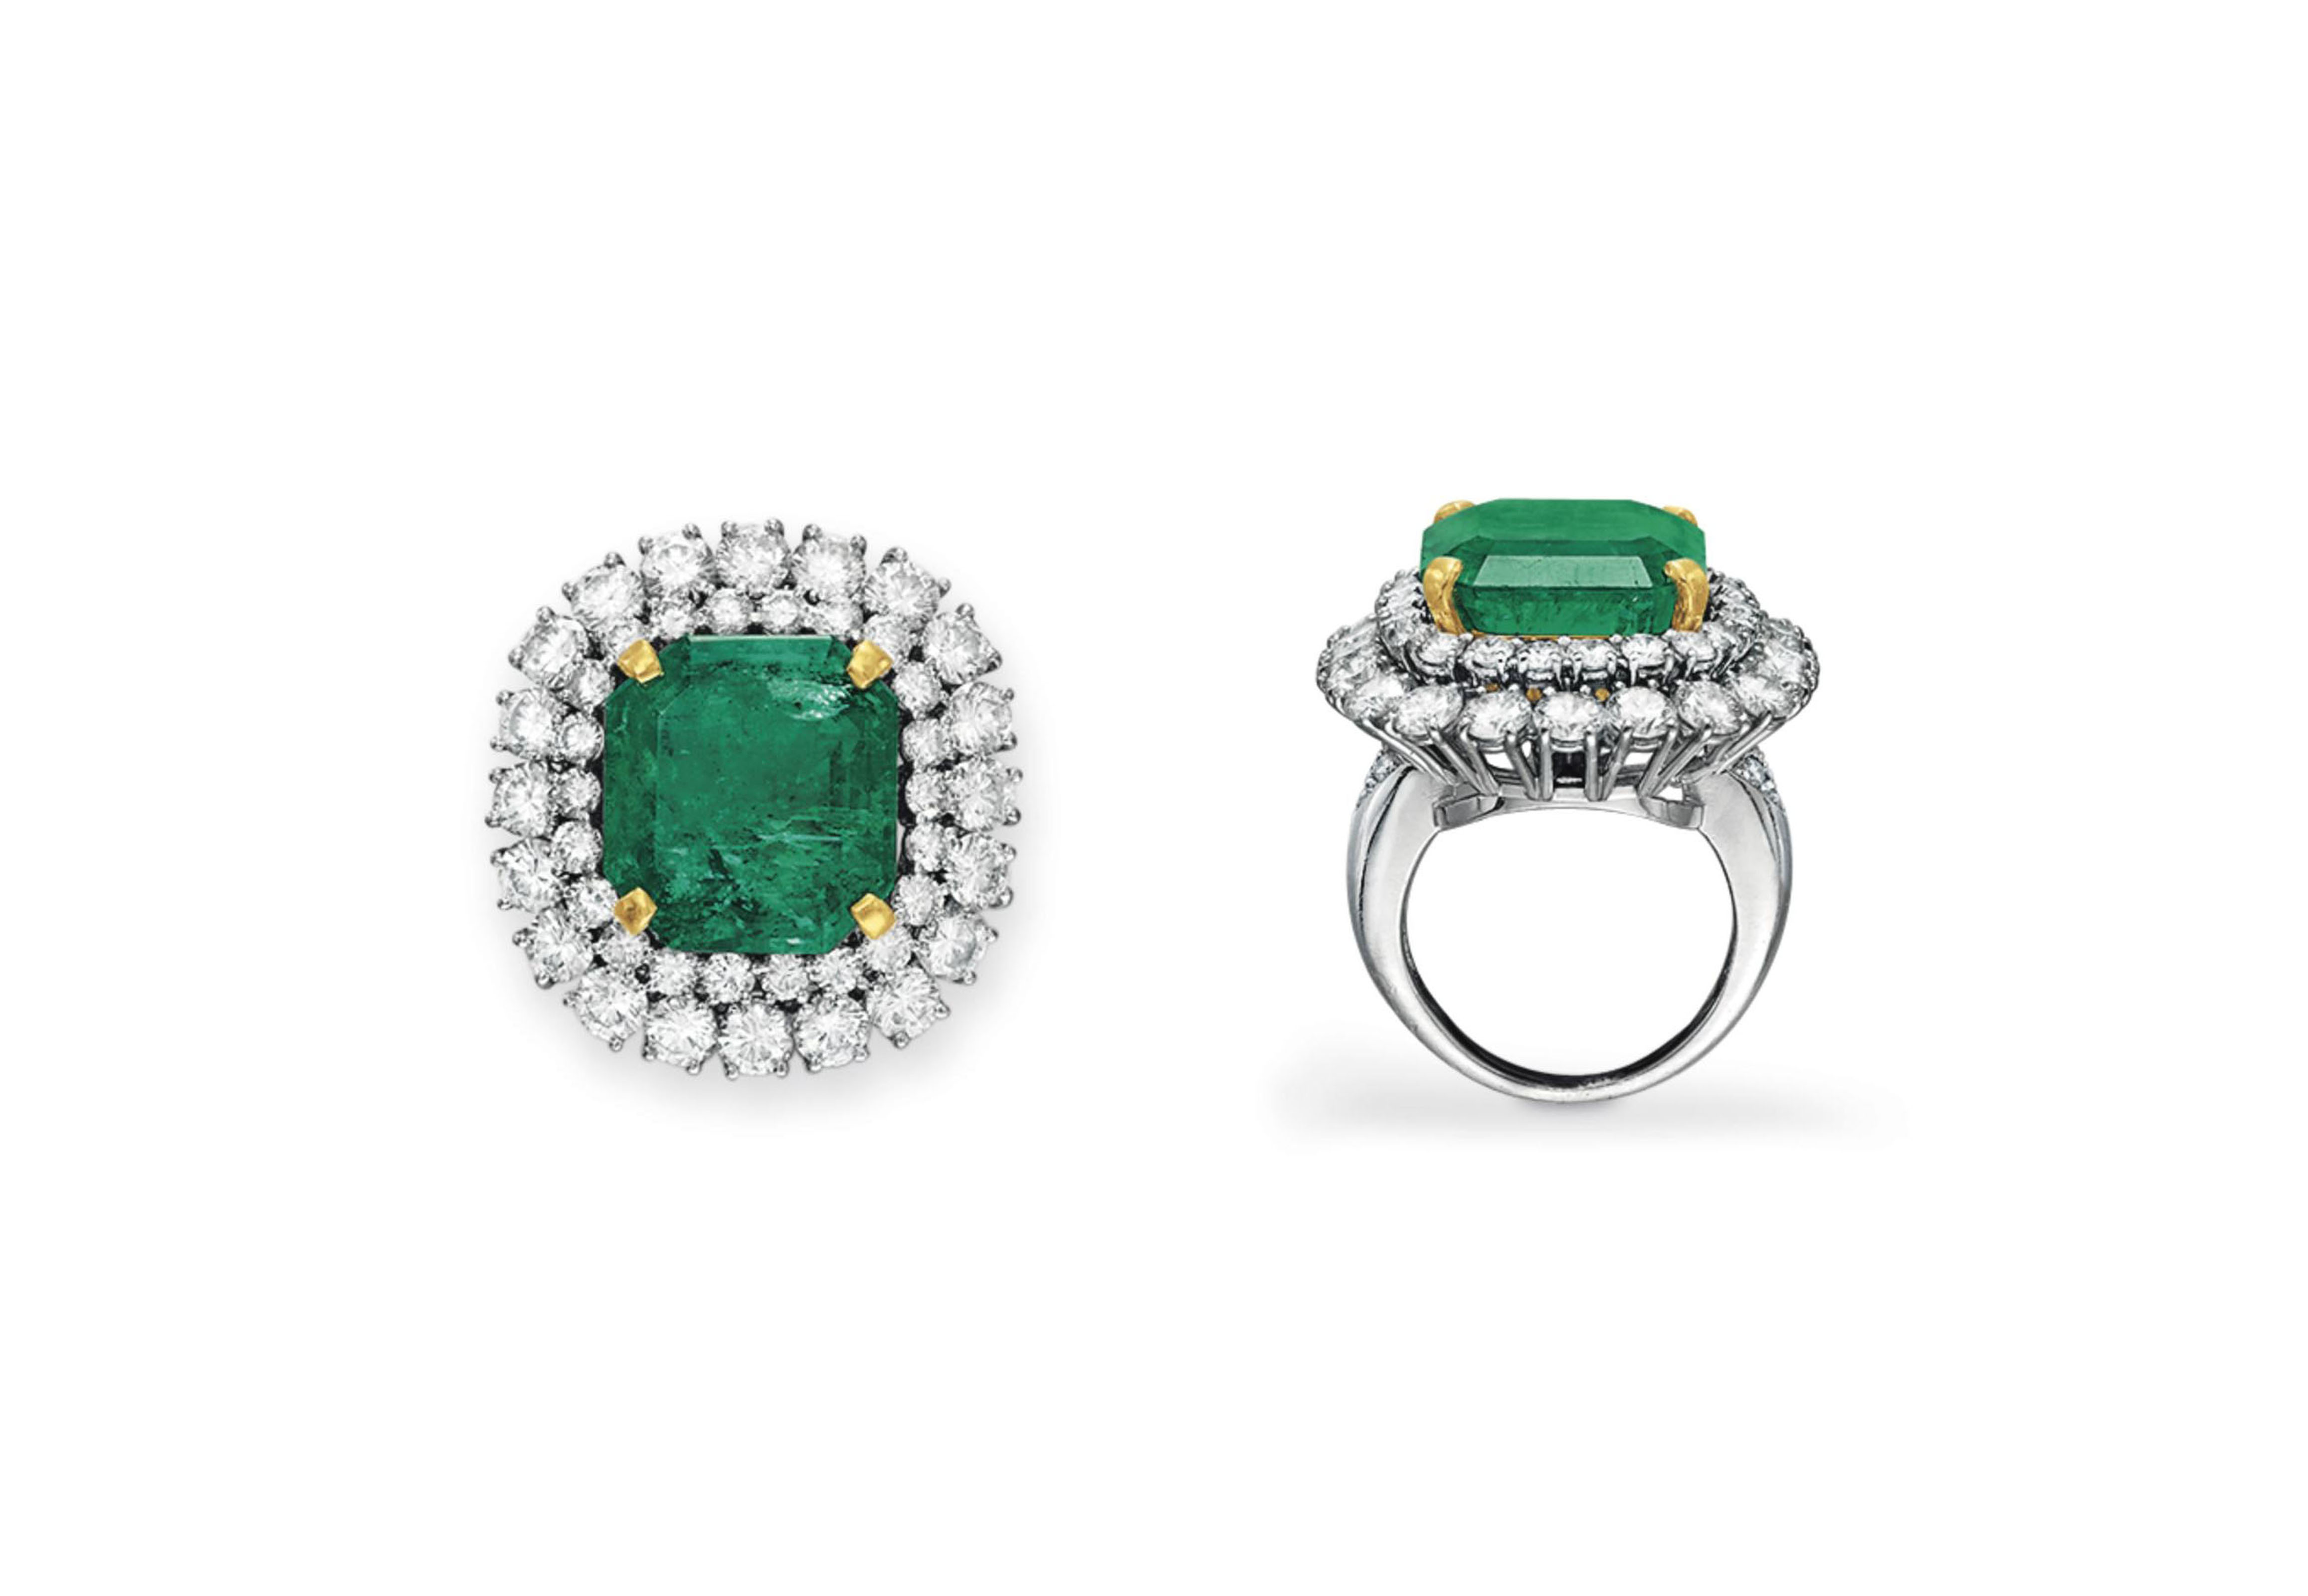 AN EMERALD AND DIAMOND EAR CLIP AND RING, BY VAN CLEEF & ARPELS